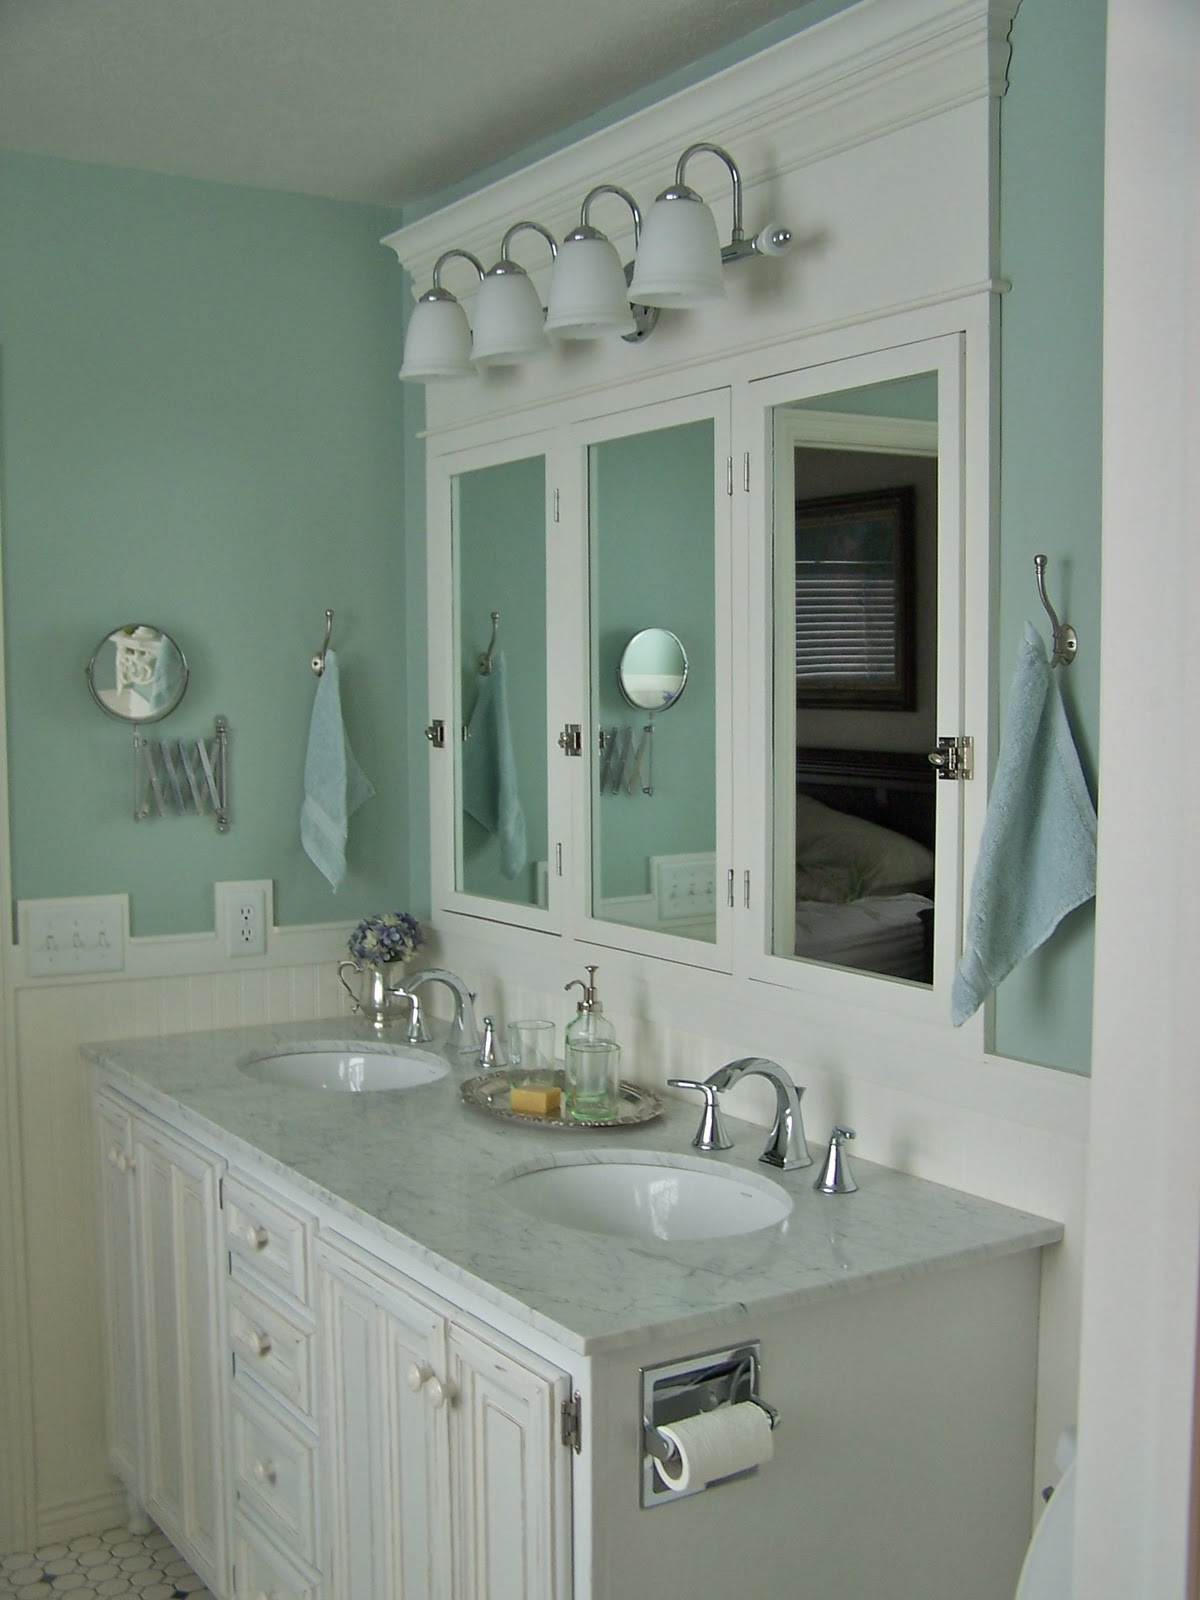 Remodelaholic complete diy master bathroom remodel - Bathroom mirrors and medicine cabinets ...